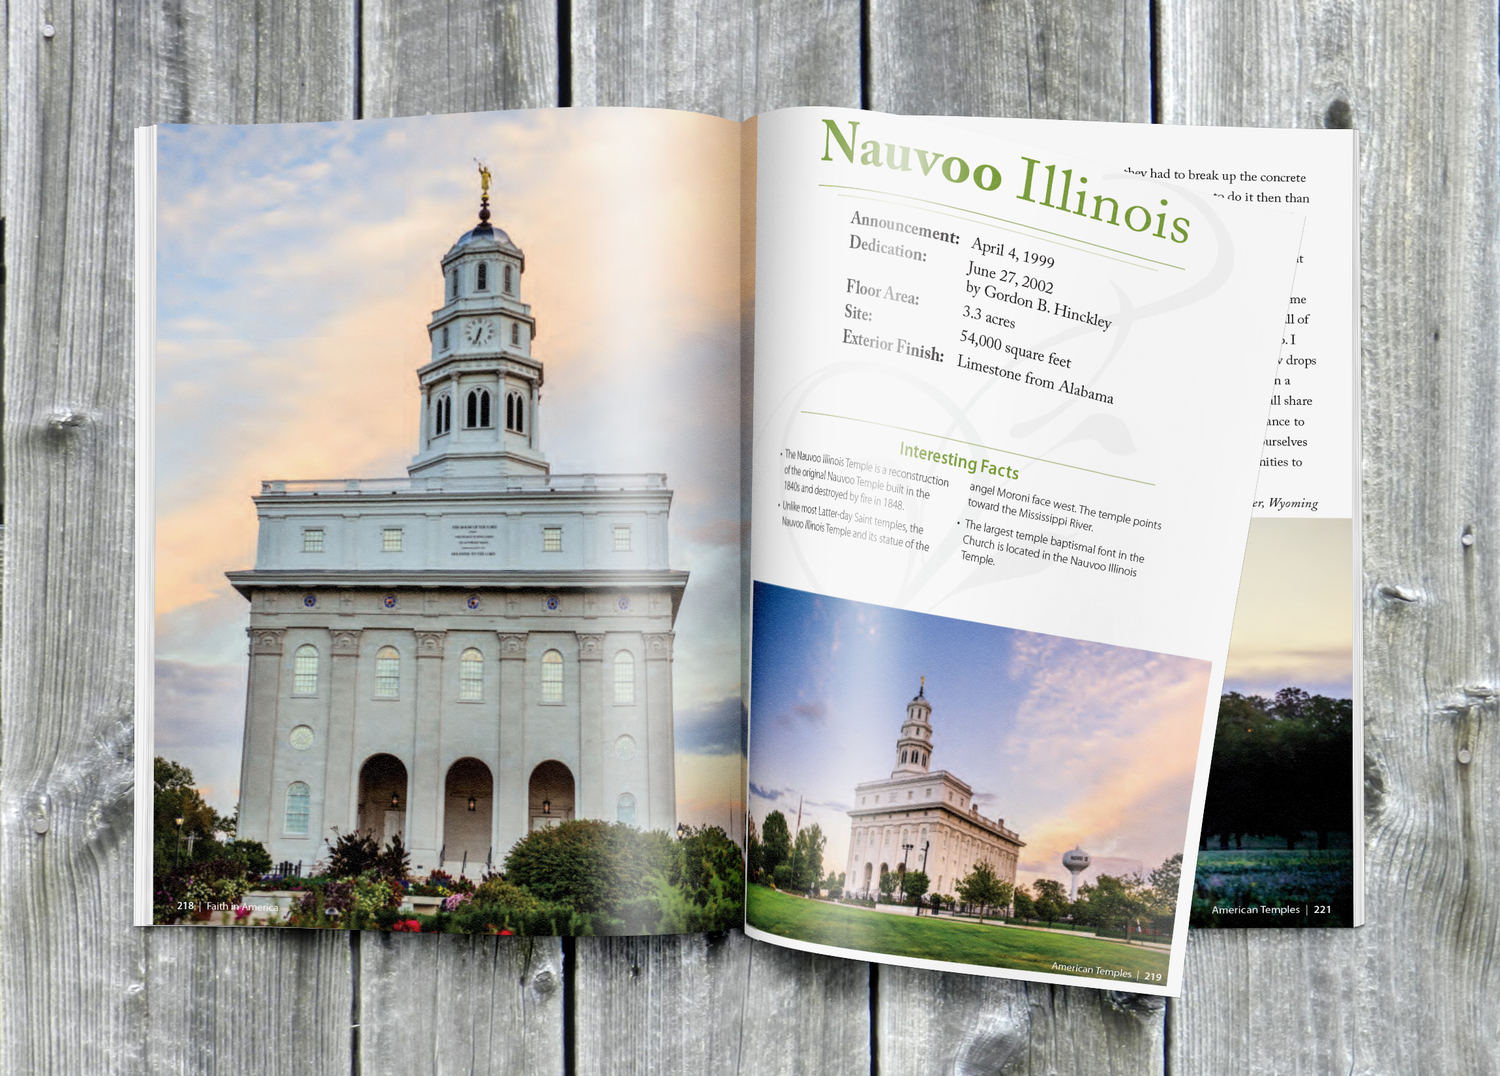 Nauvoo Illinois Temple from American Temples book by Scott jarvie